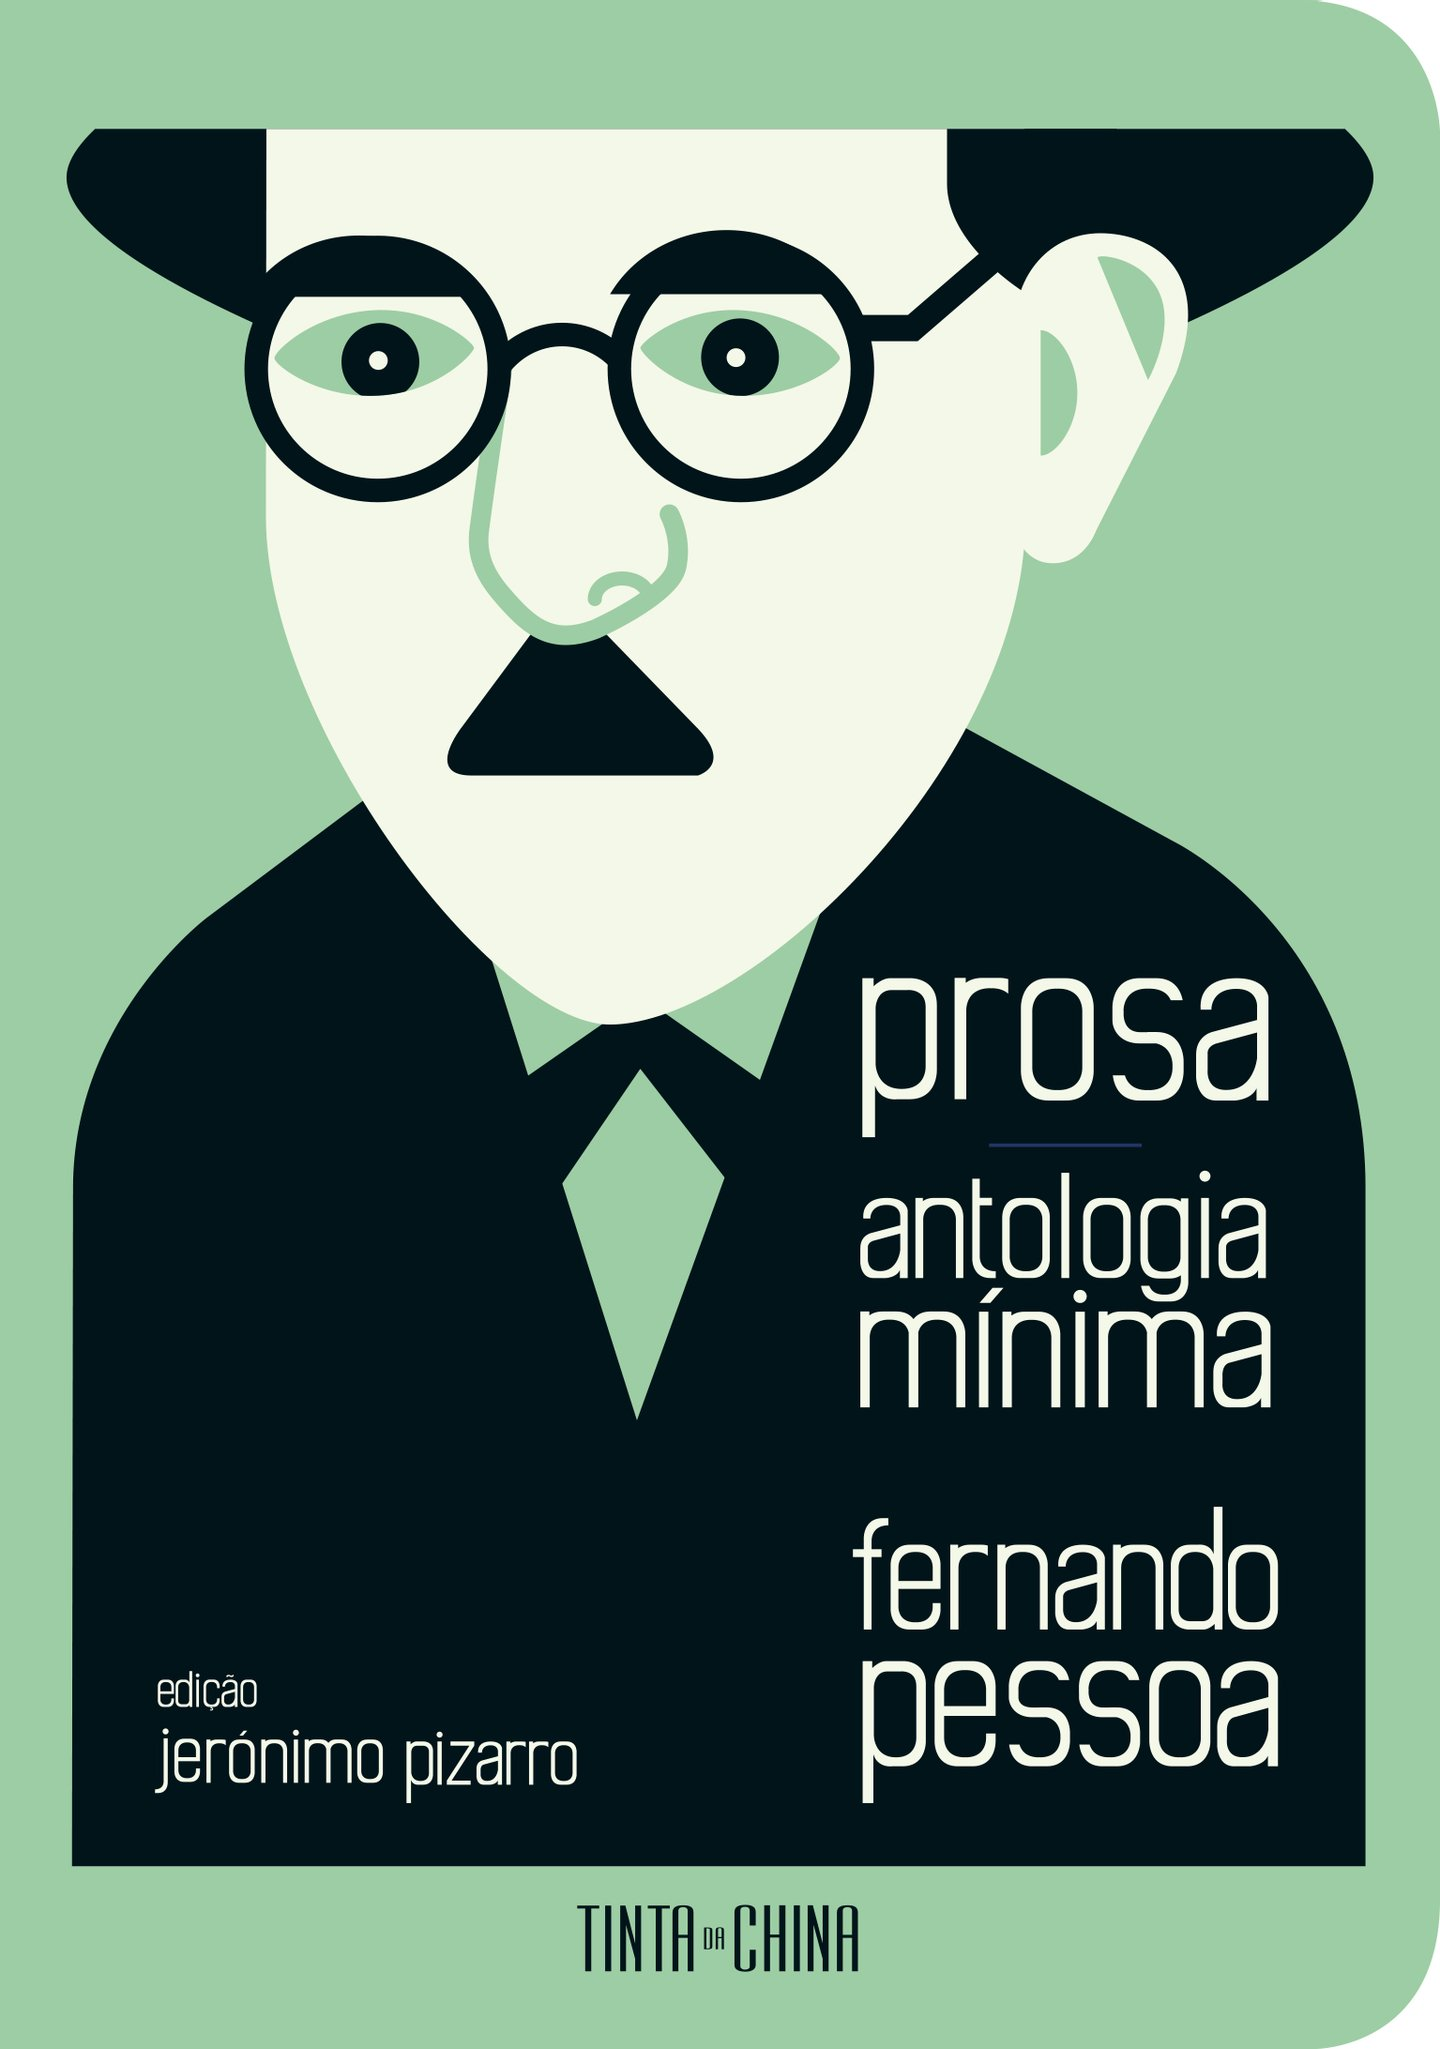 """Jerónimo Pizarro: """"It was our editorial agenda that made Pessoa only or..."""